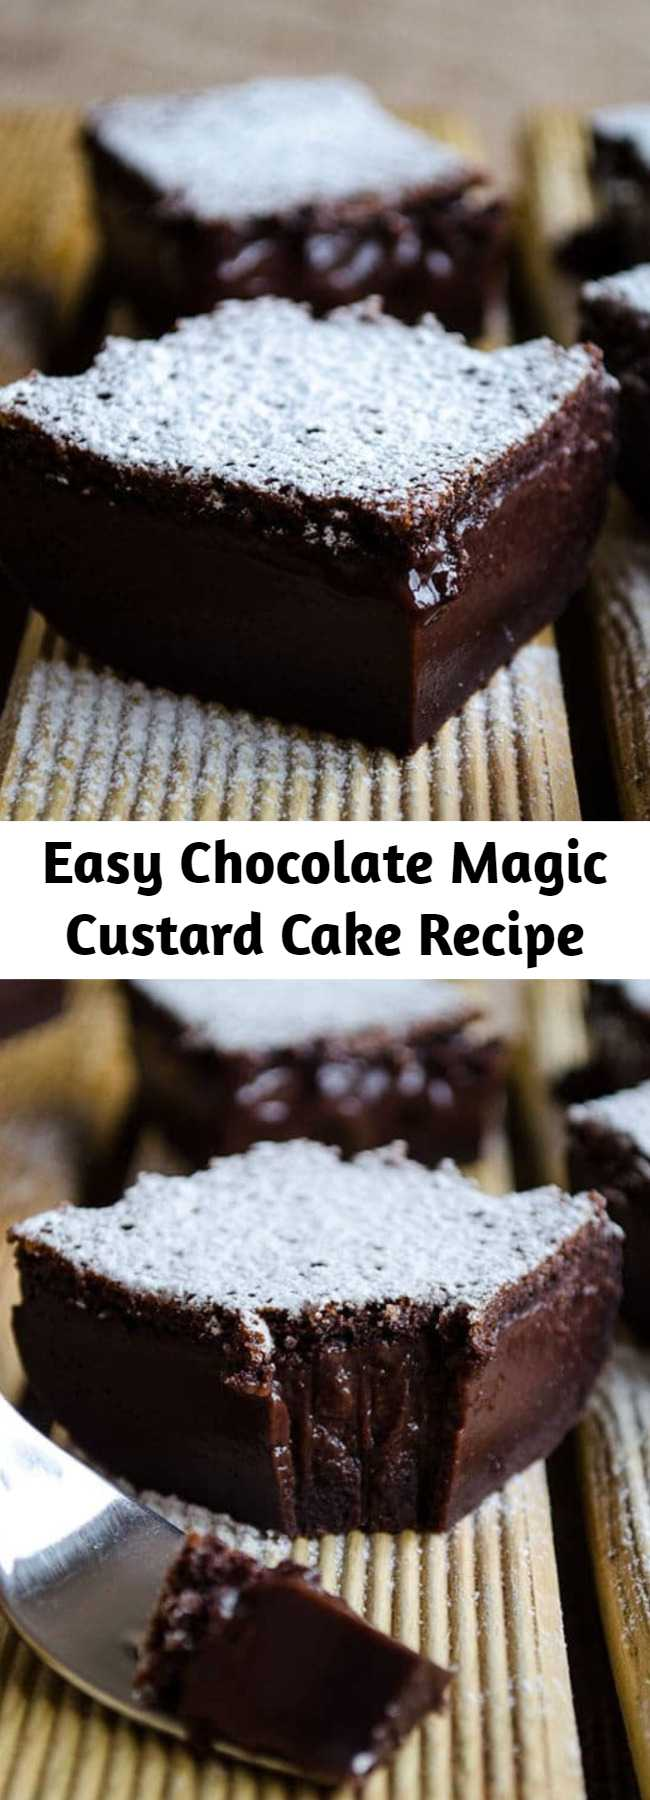 Easy Chocolate Magic Custard Cake Recipe - Chocolate Magic Custard Cake will blow your mind with its look and taste. One cake batter results in 3-layered cake. Don't worry about the runny batter, it will bake up perfectly! #cake #chocolate #custard #dessert